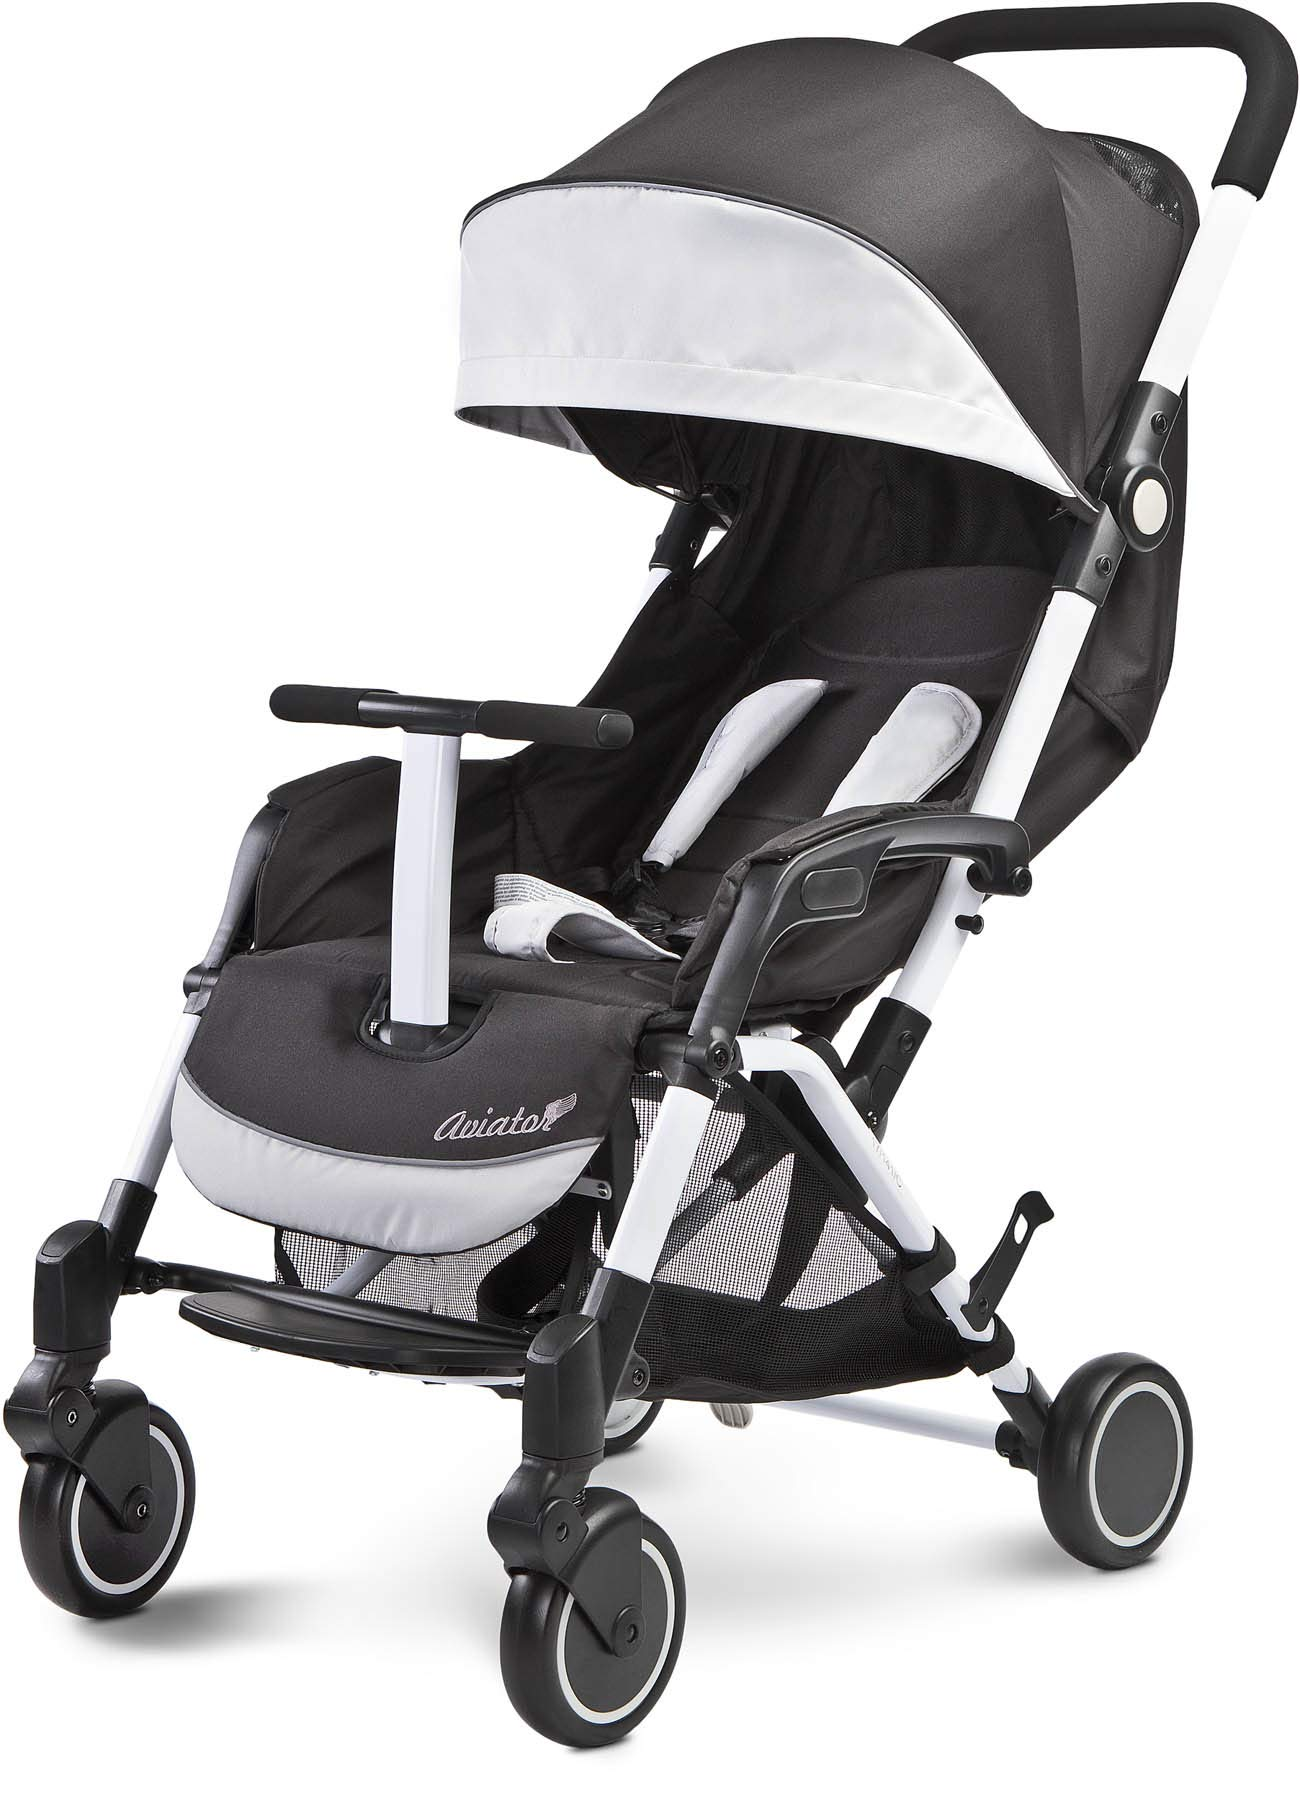 Aviator Ultralight Pushchair Grey Caretero Stroller for babies from 6 months Month weighing up to 15 kg Compact size and light weight (7.1kg) for easy manoeuvring and transport Eva foam wheels front with cushioning for driving comfort 1